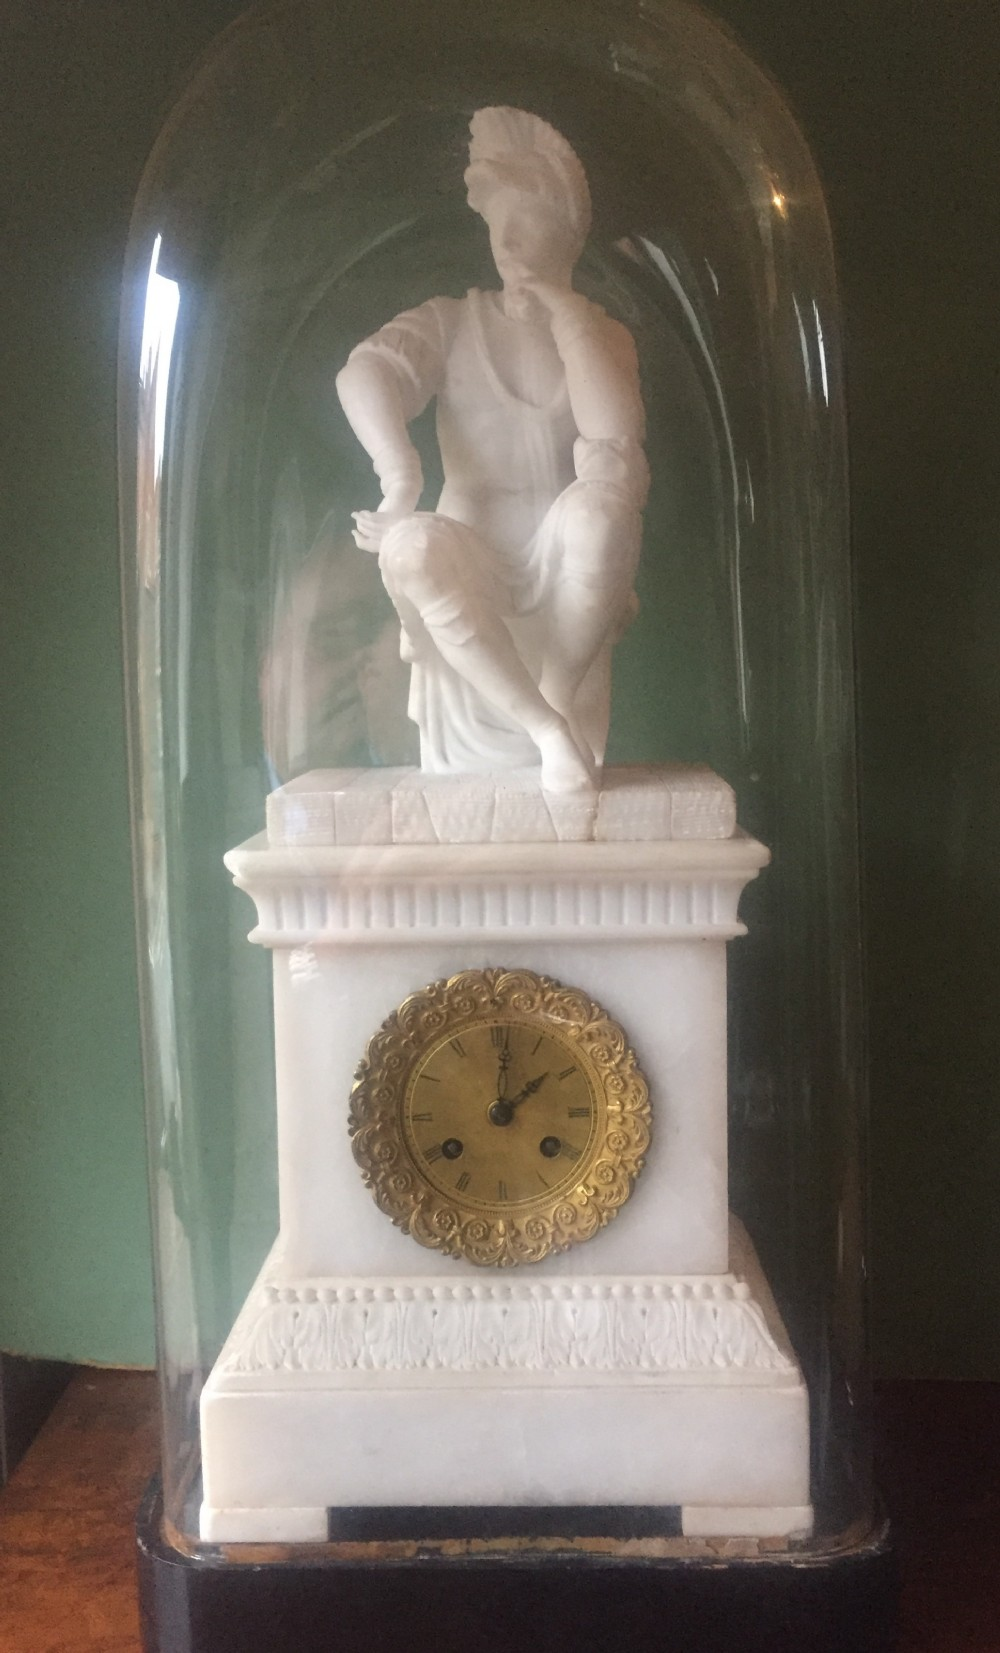 c19th italian carved alabaster mantel clock fitted with a french movement under glass dome